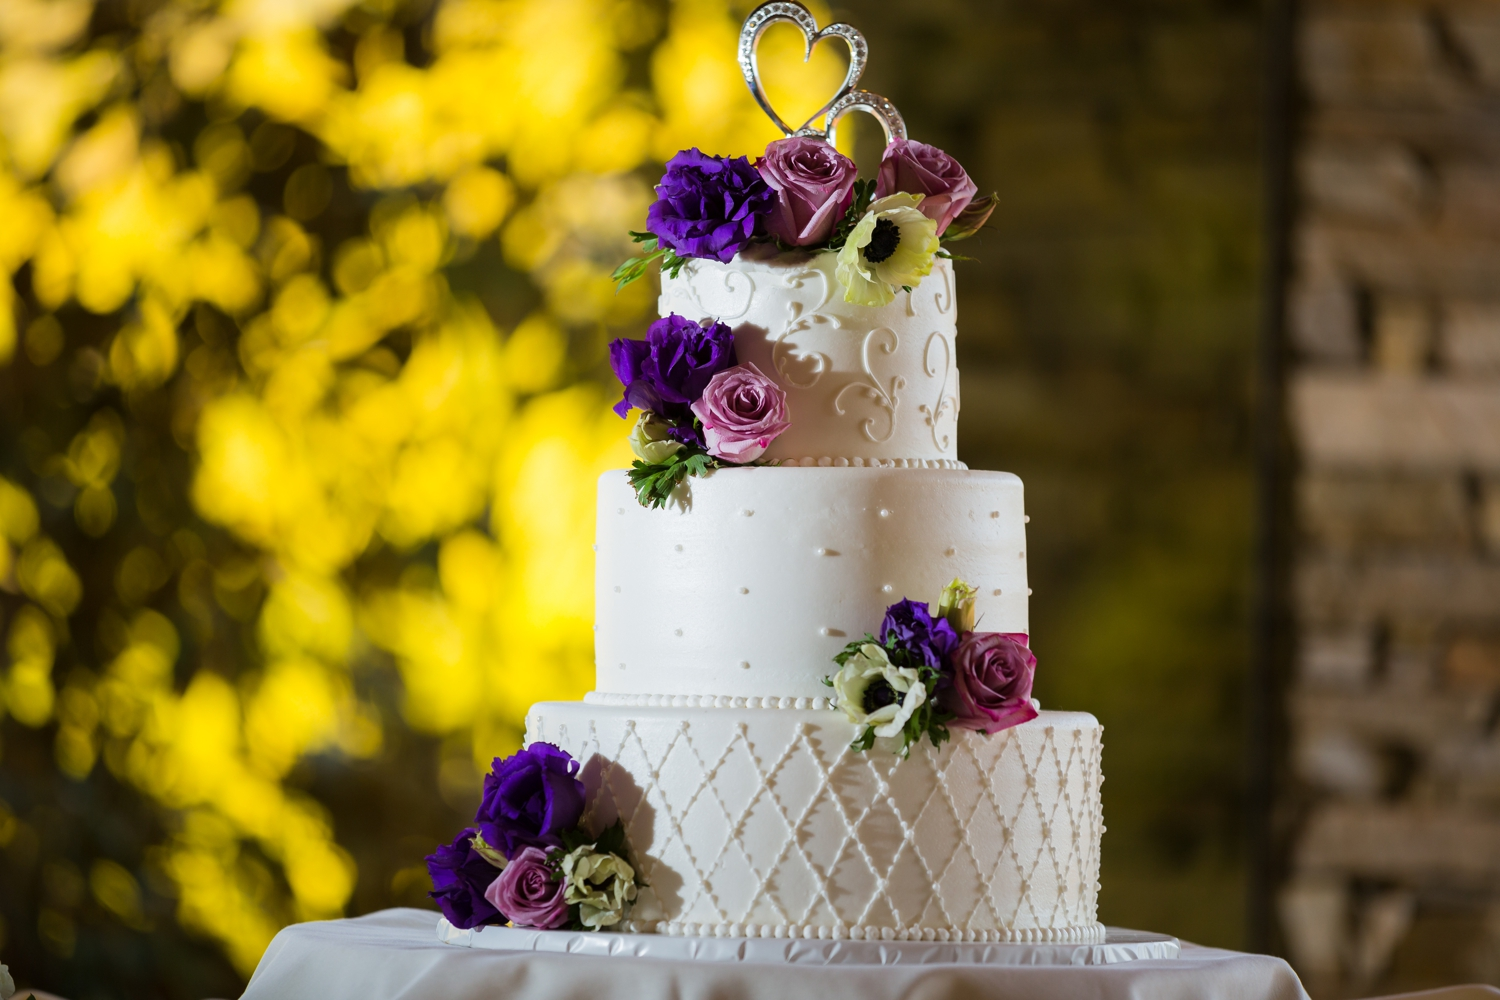 Purple and white wedding cake at Dove Canyon Country Club, Dove Canyon, CA